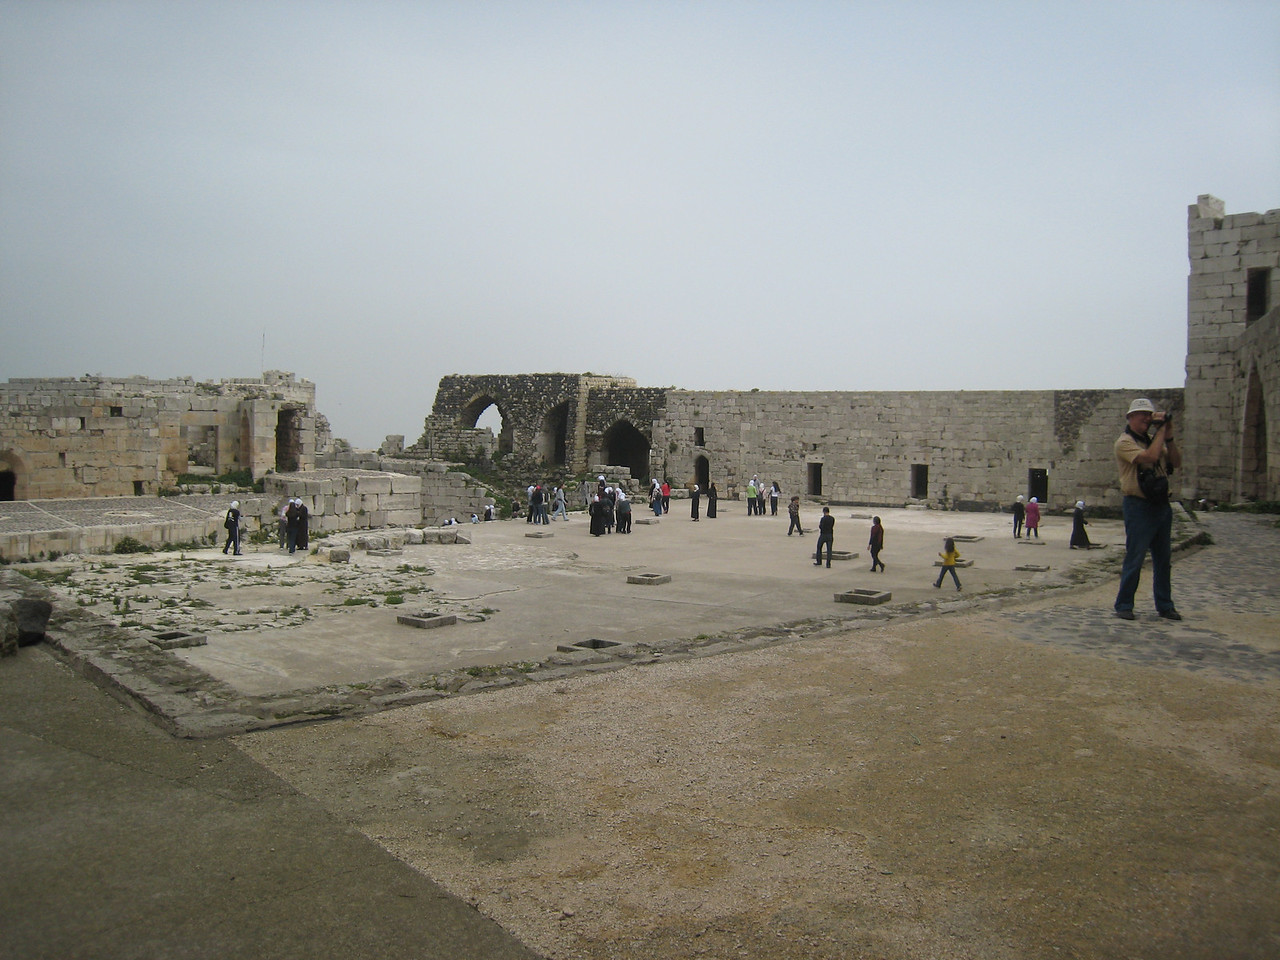 The upper courtyard.